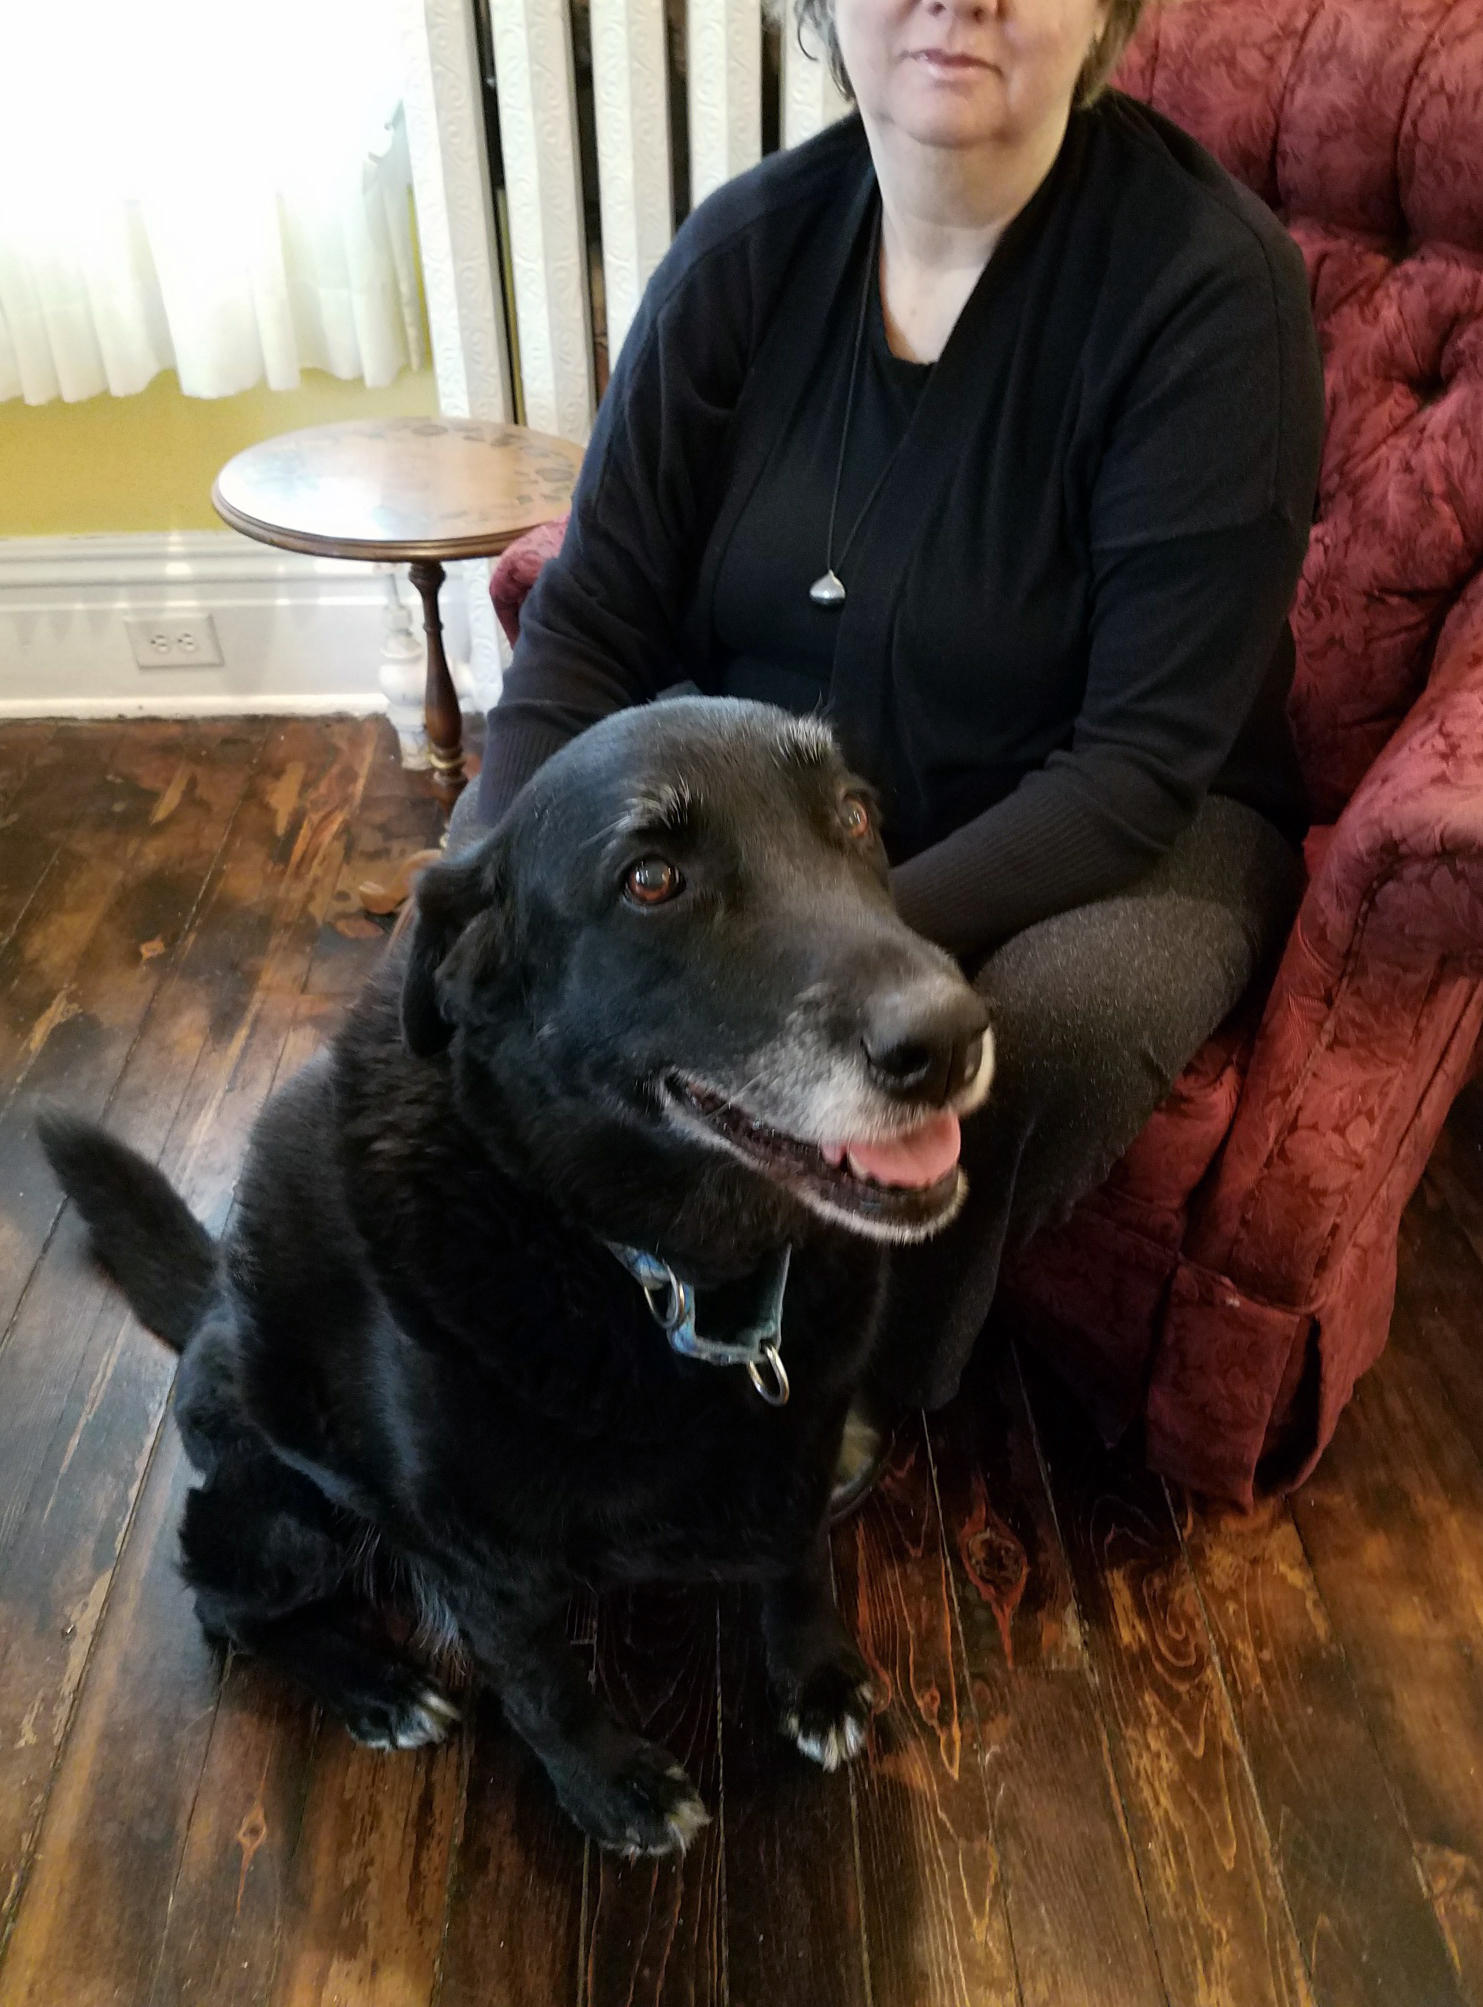 Debonair Good Dogs Reviews Good Dogs New Jersey Home Ten Years Black Lab Mix Abby Ran Away From She Years After She Went A Black Lab Is Returned To Her Home bark post Home For Good Dogs